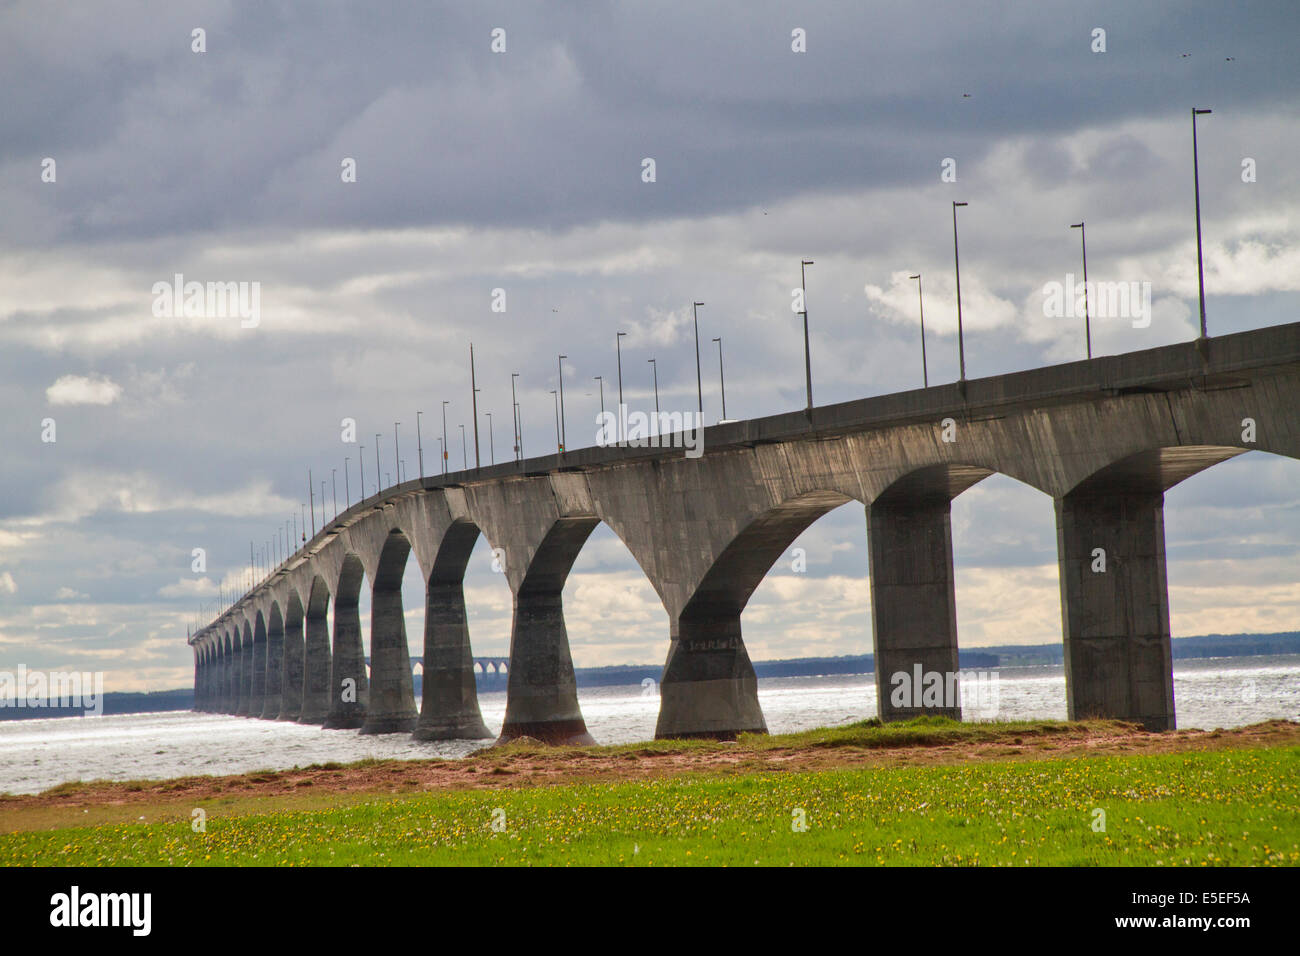 Confederation Bridge, the longest bride over waters that freeze, connects Prince Edward Island with New Brunswick.Prince - Stock Image